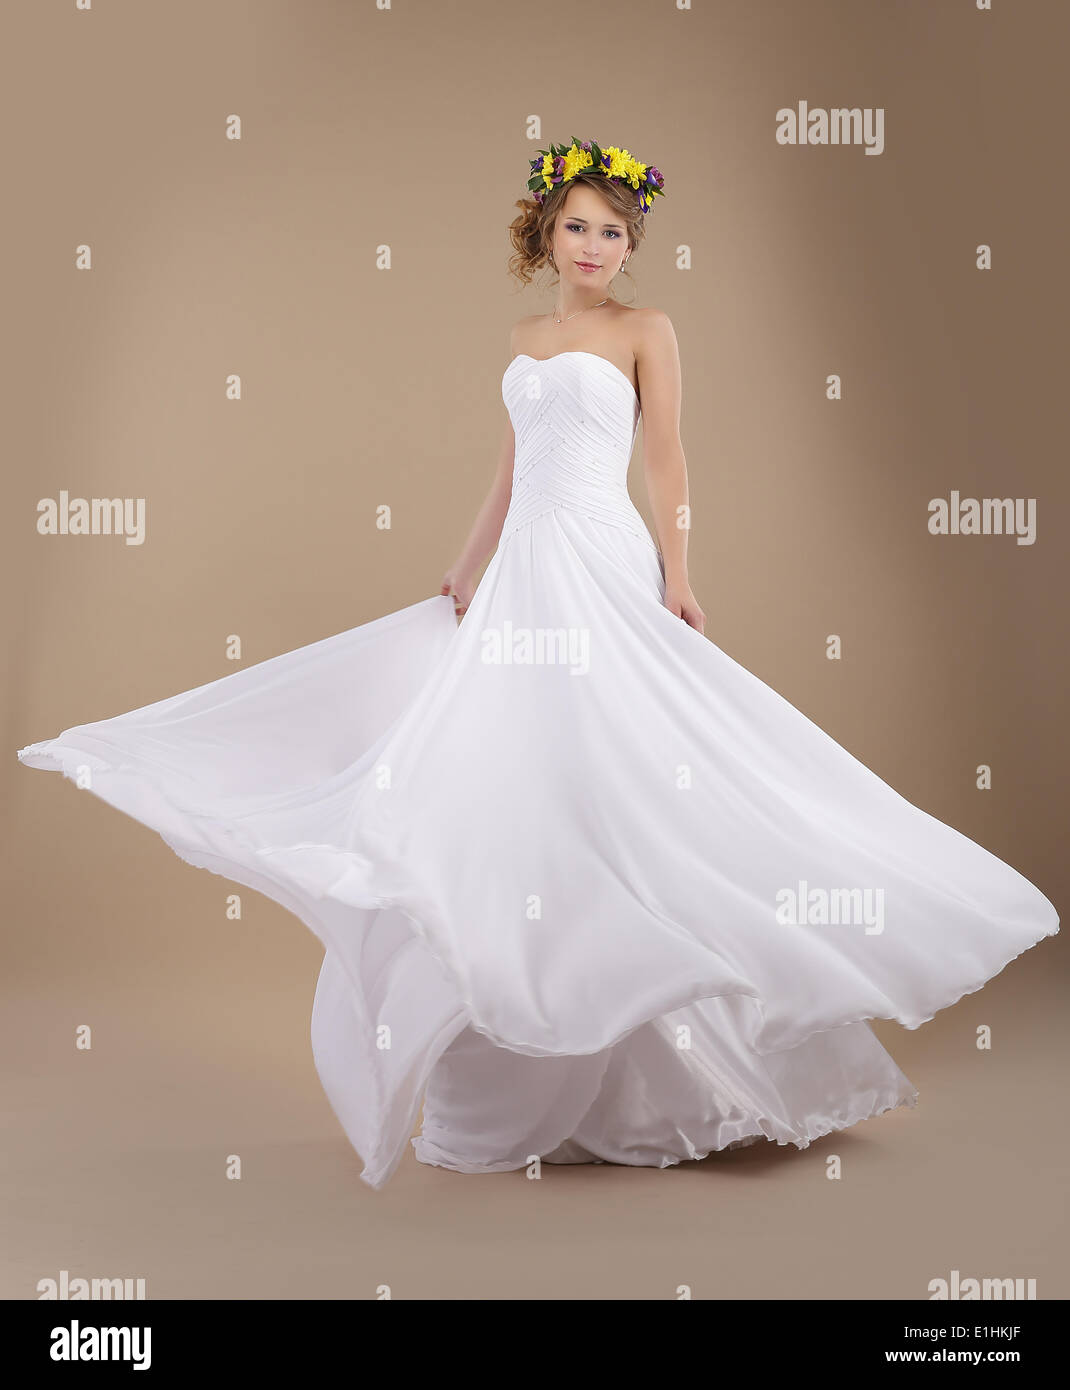 Beautiful Fiancee with Vernal Wreath of Flowers in Flying Wedding Dress - Stock Image